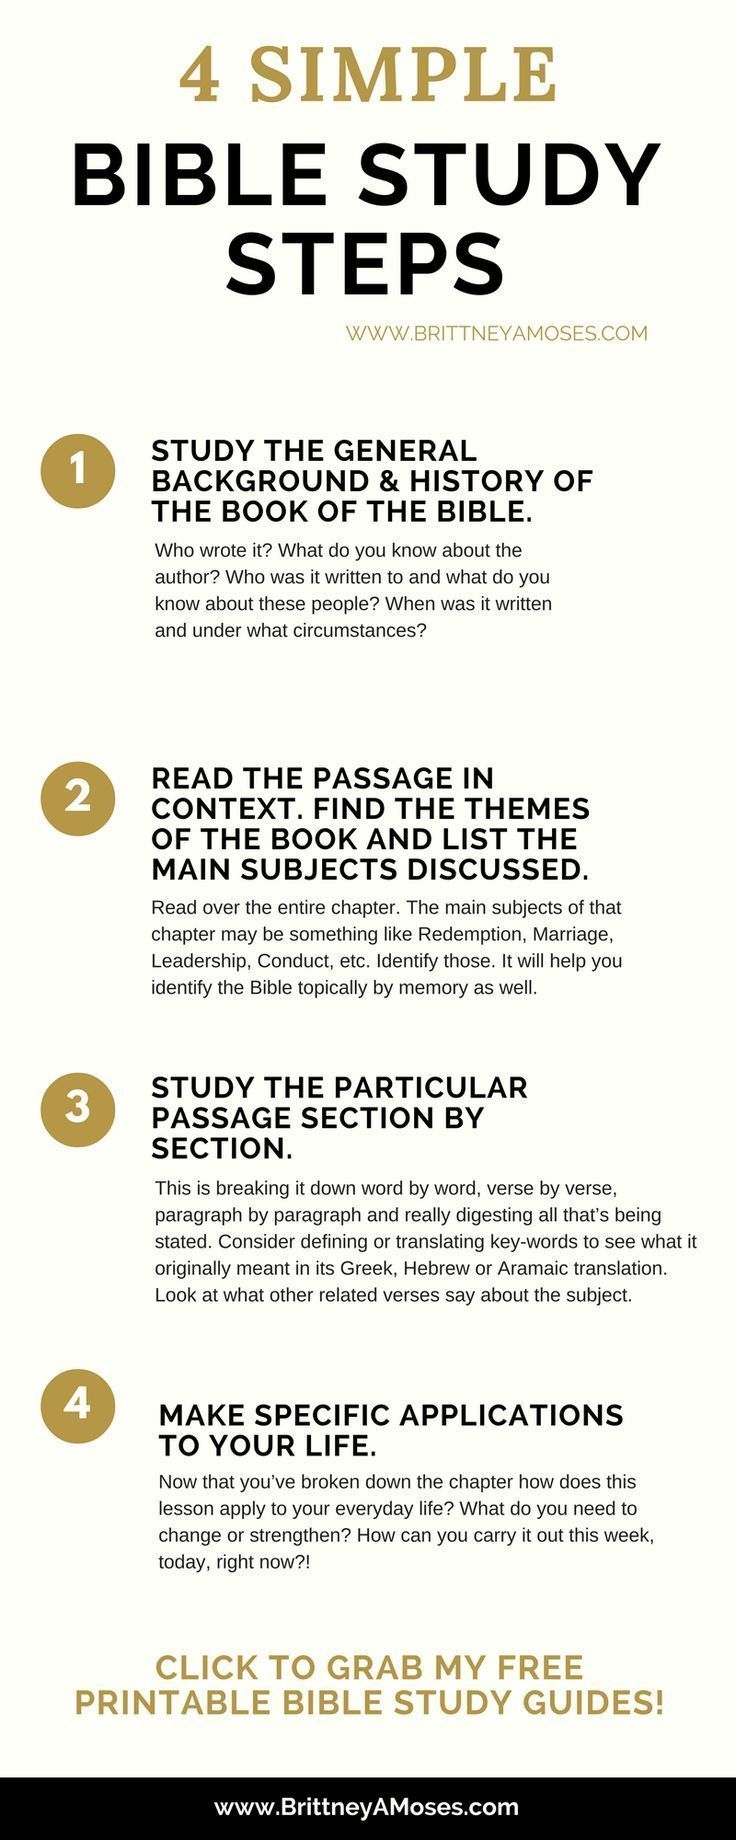 4 Simple Bible Study Steps | How To Study The Bible | Pinterest - Free Printable Bible Study Lessons For Adults